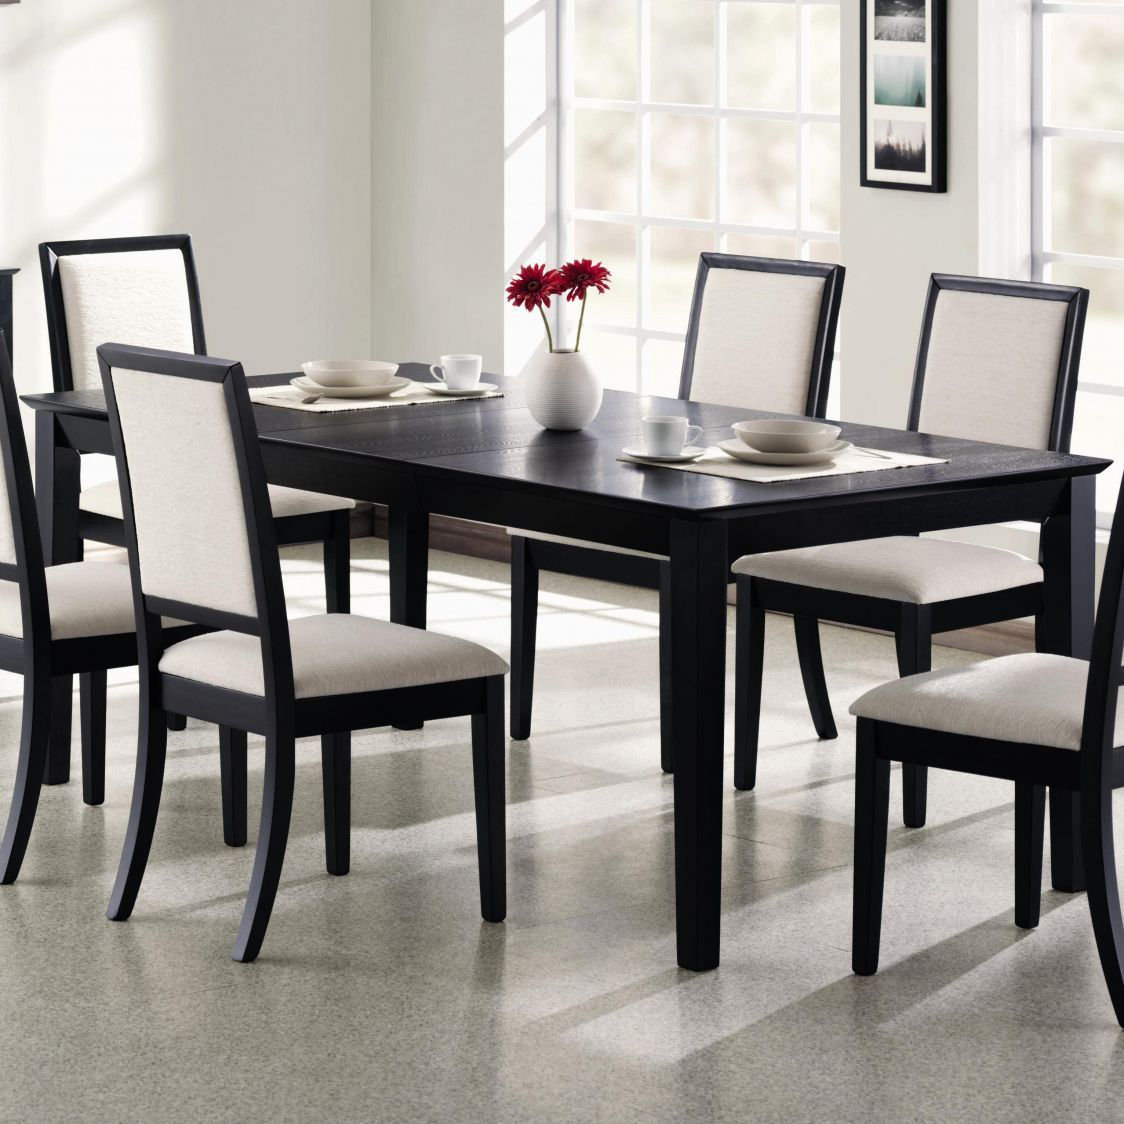 Black Lacquer Dining Room Chairs - Best Way to Paint Furniture Check ...